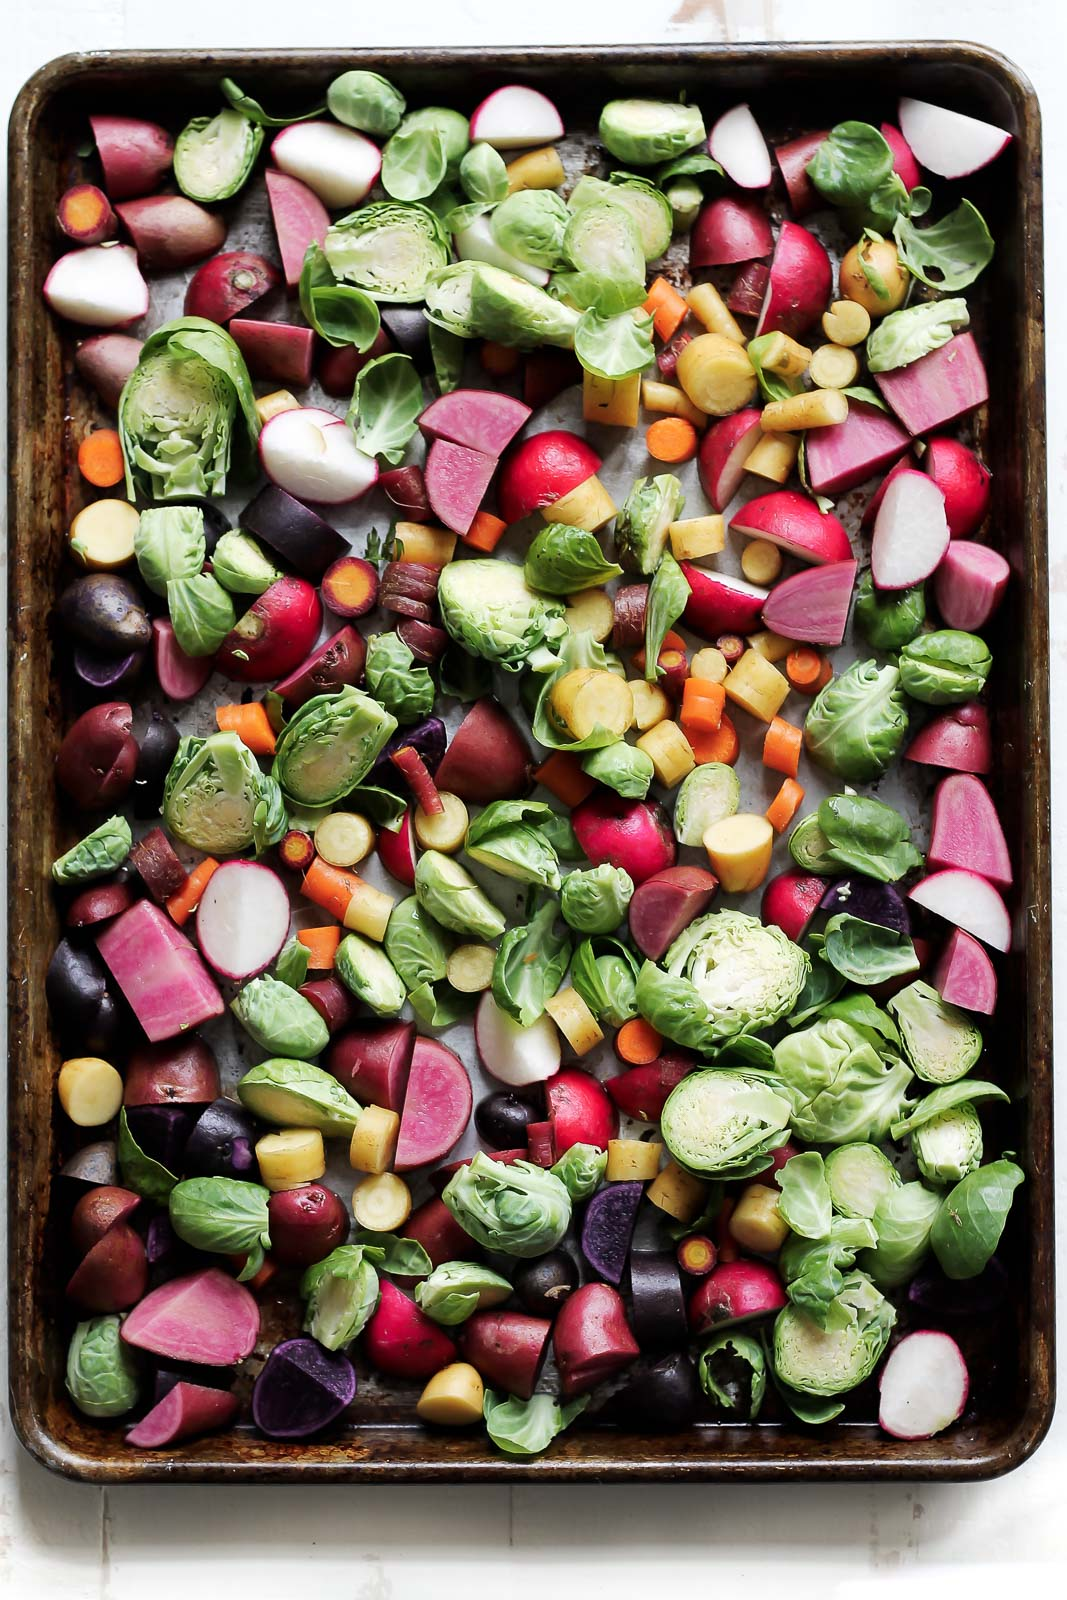 Rainbow veggies on a pan ready to roast